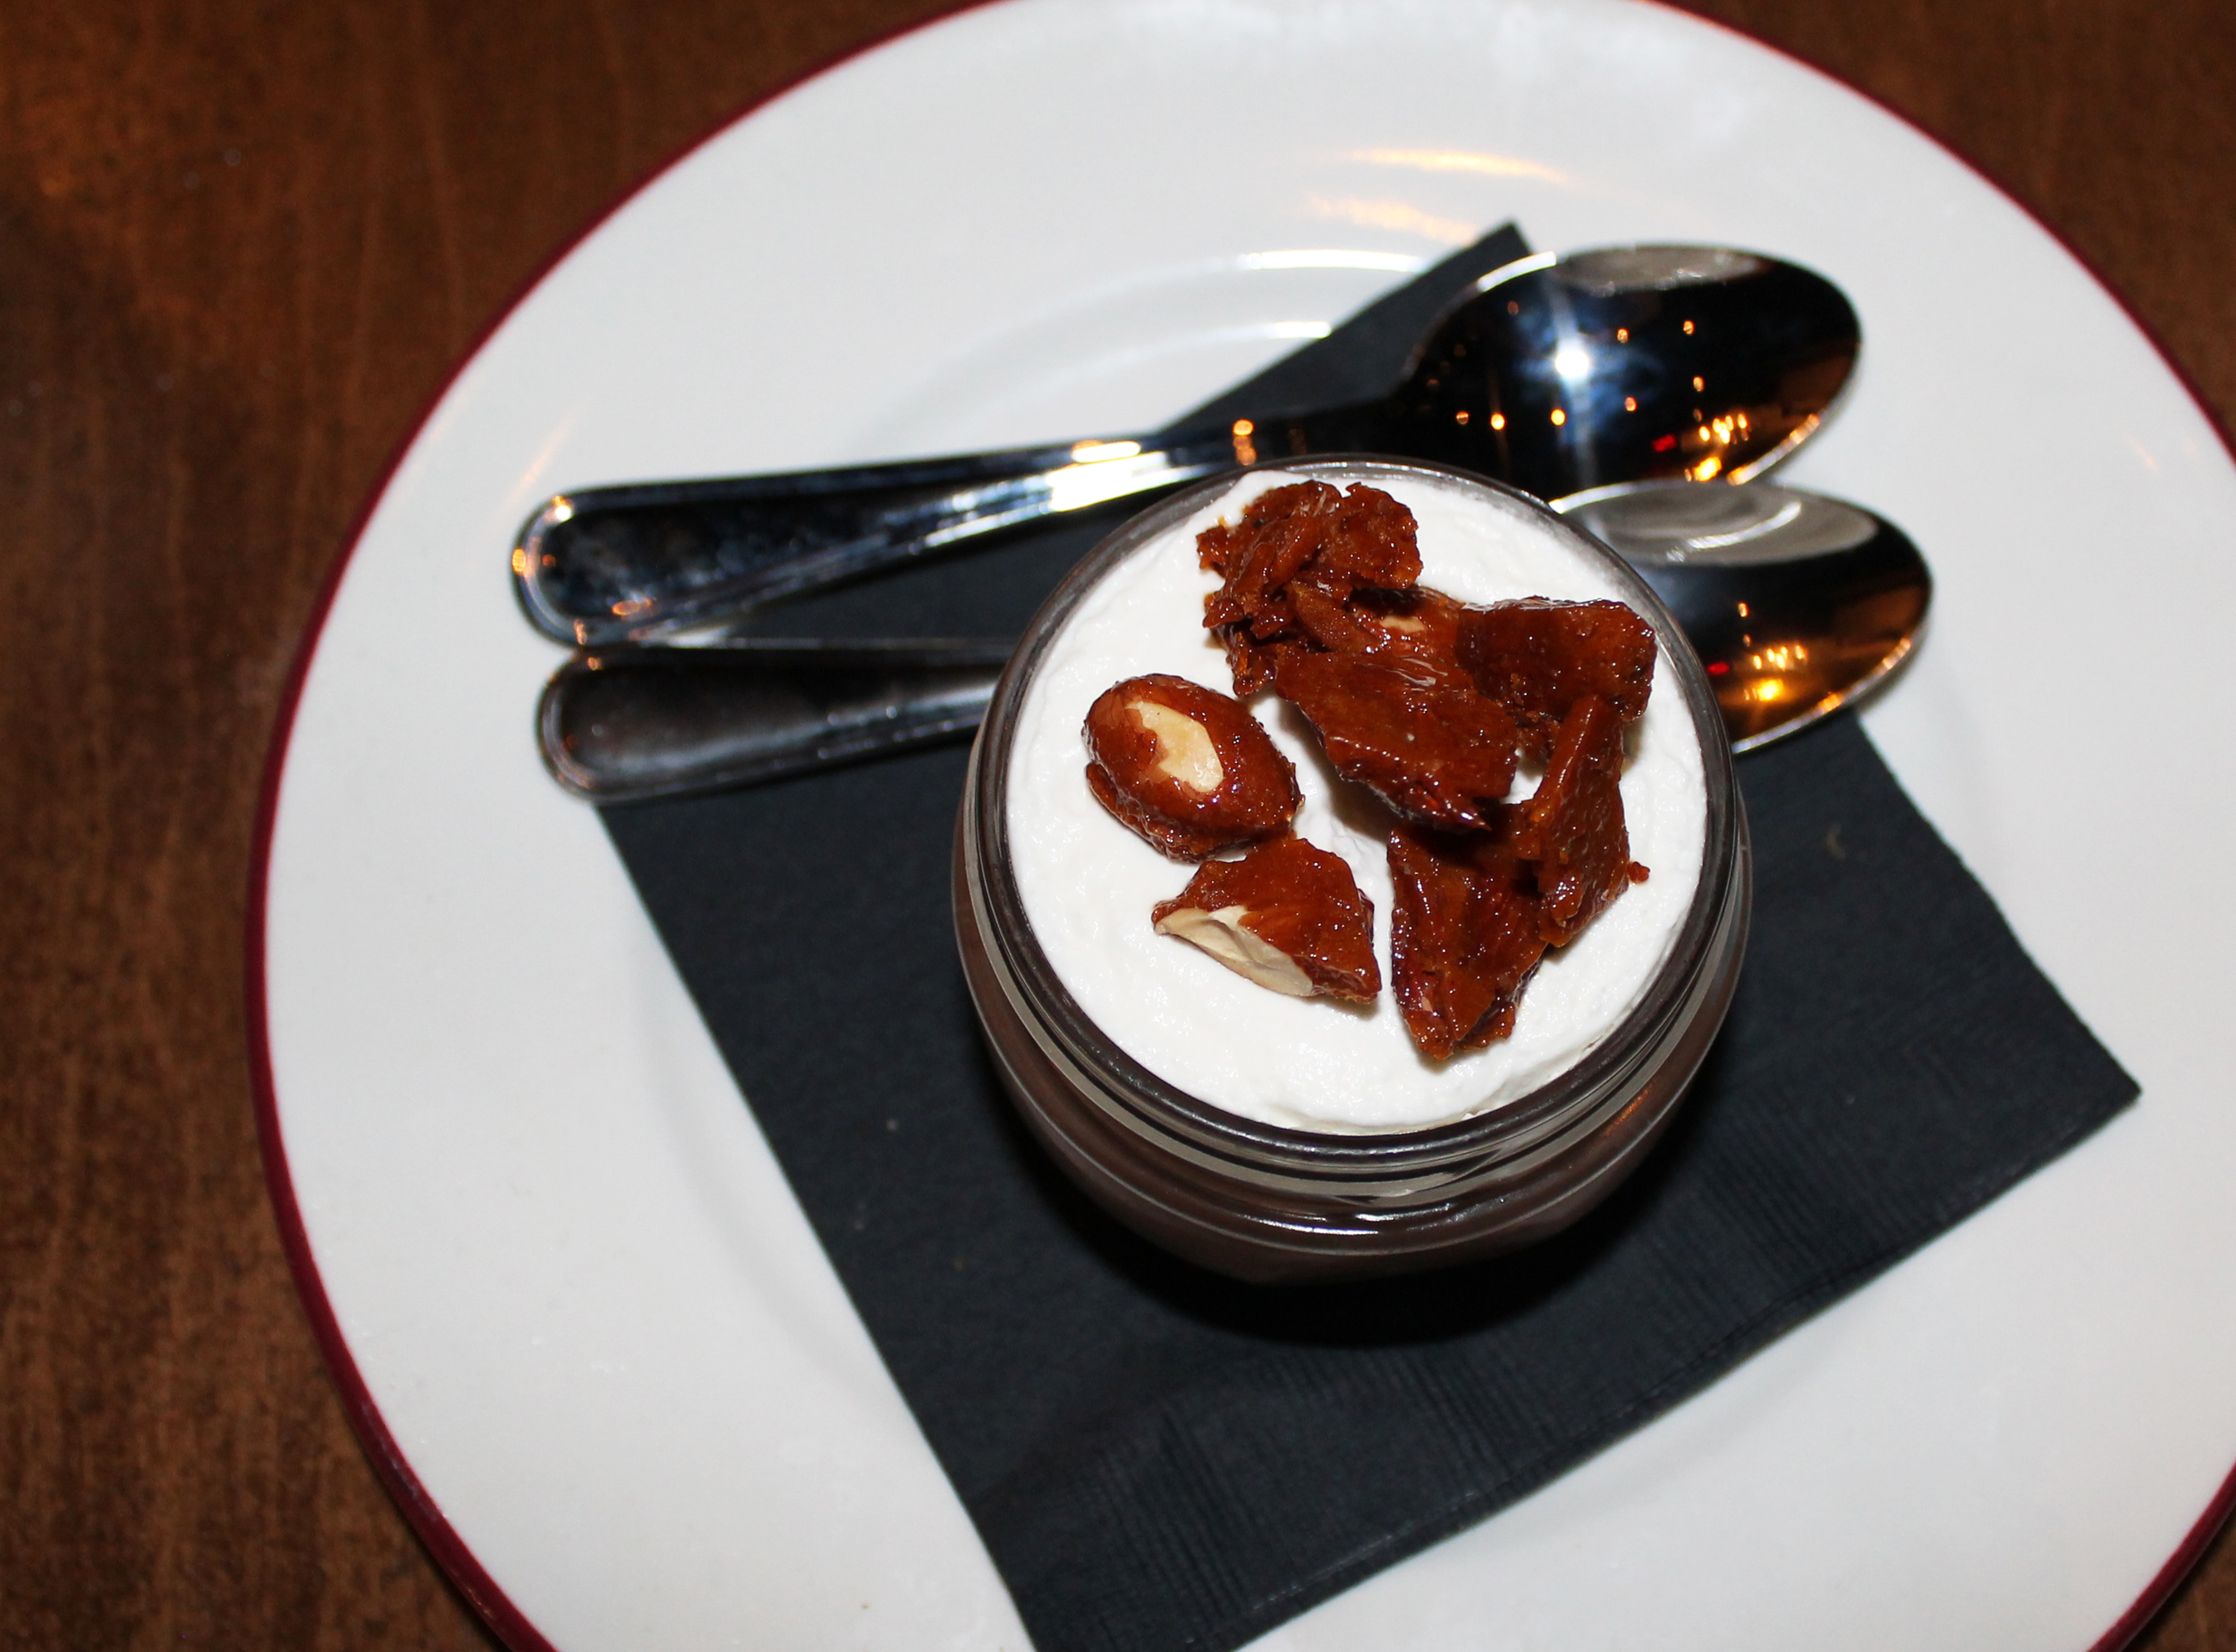 Chocolate mousse with brittle